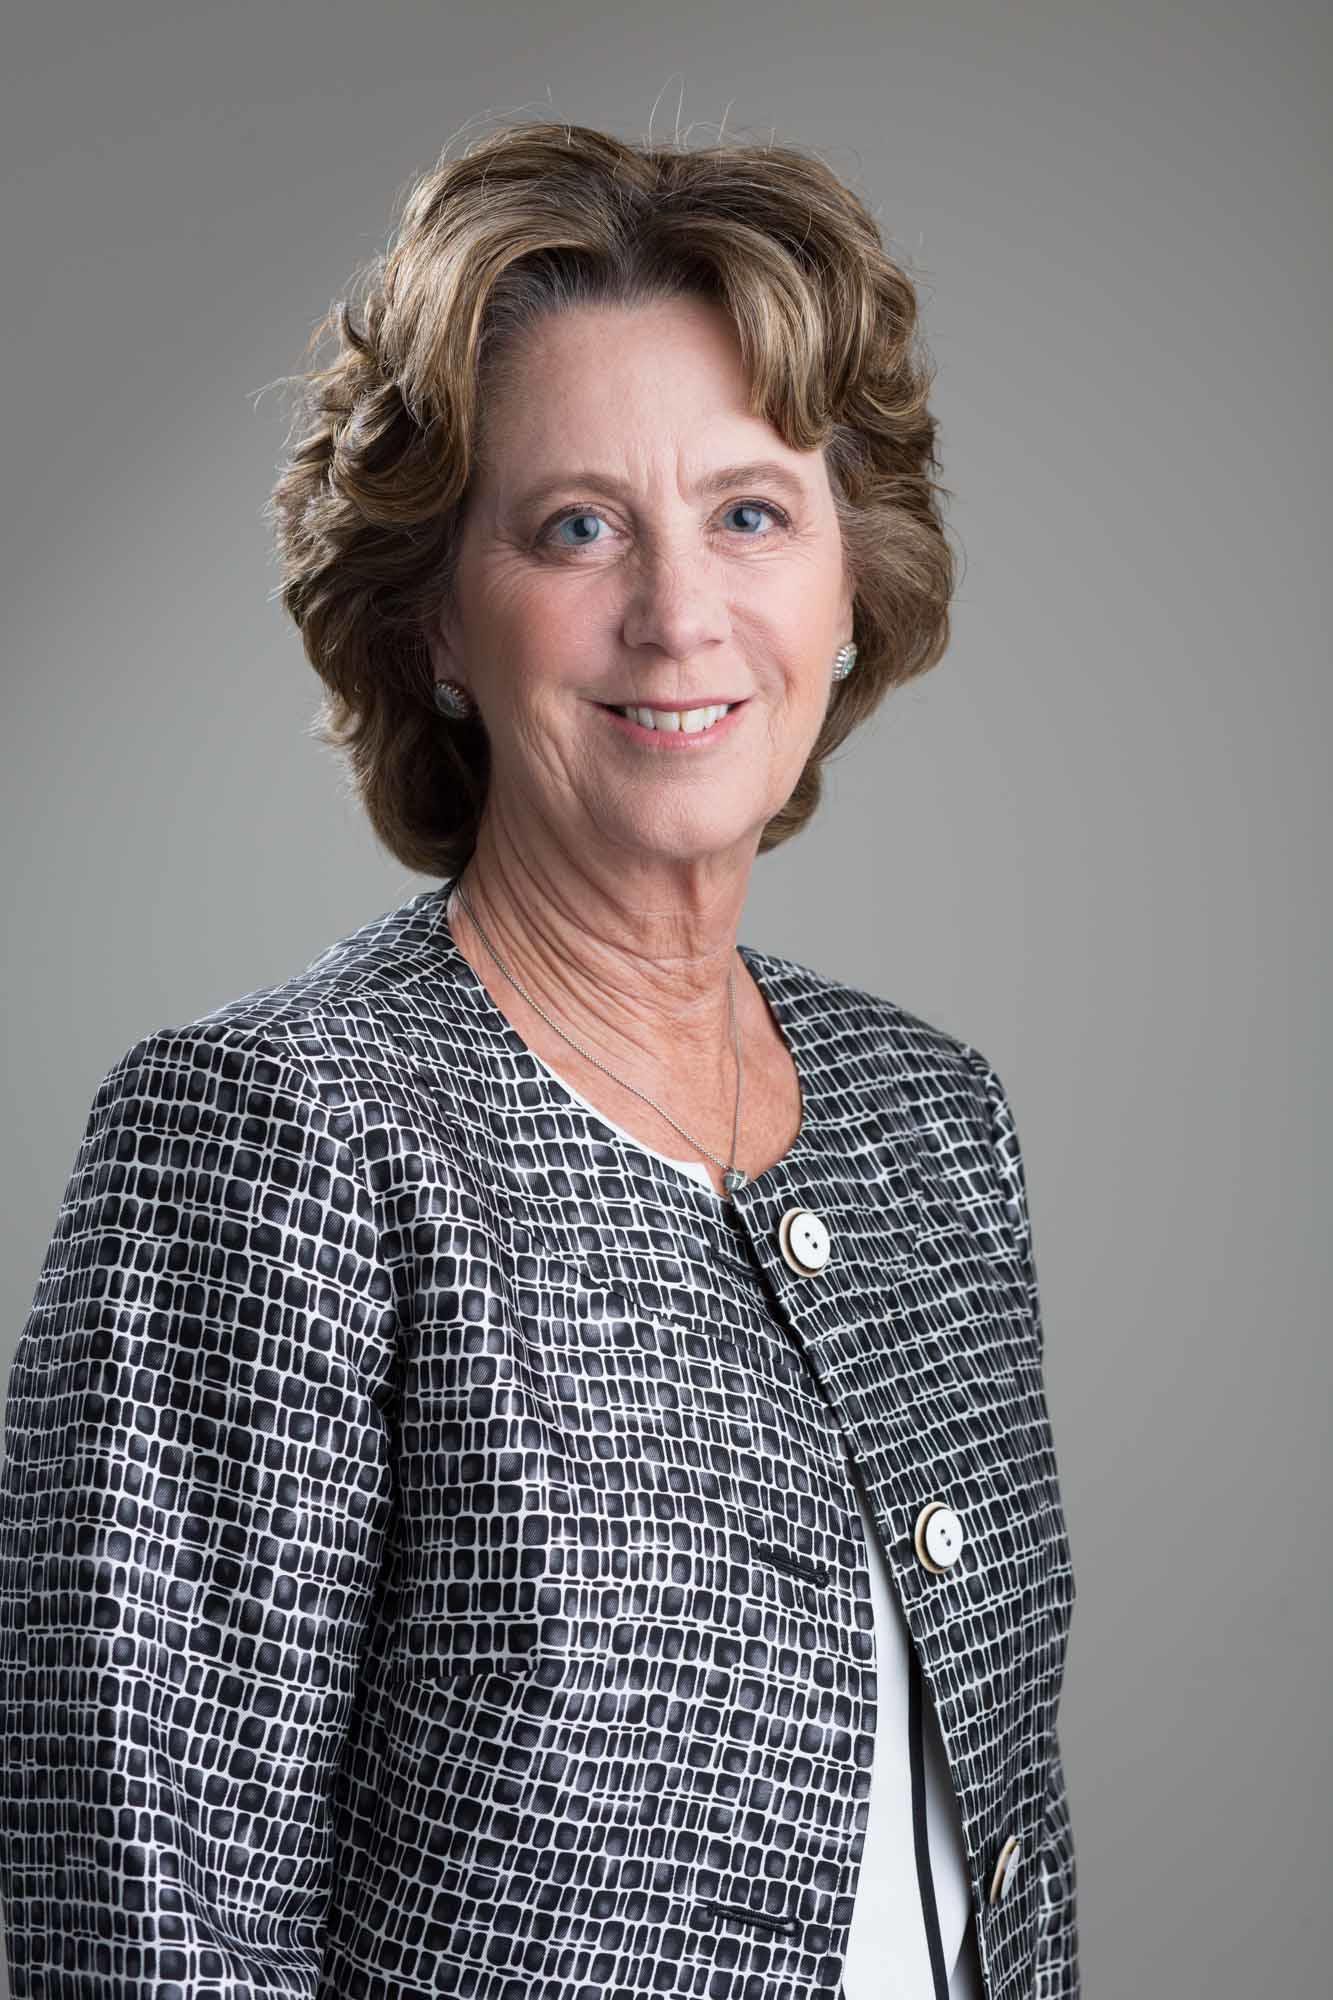 Corinne Chandler, Senior Partner